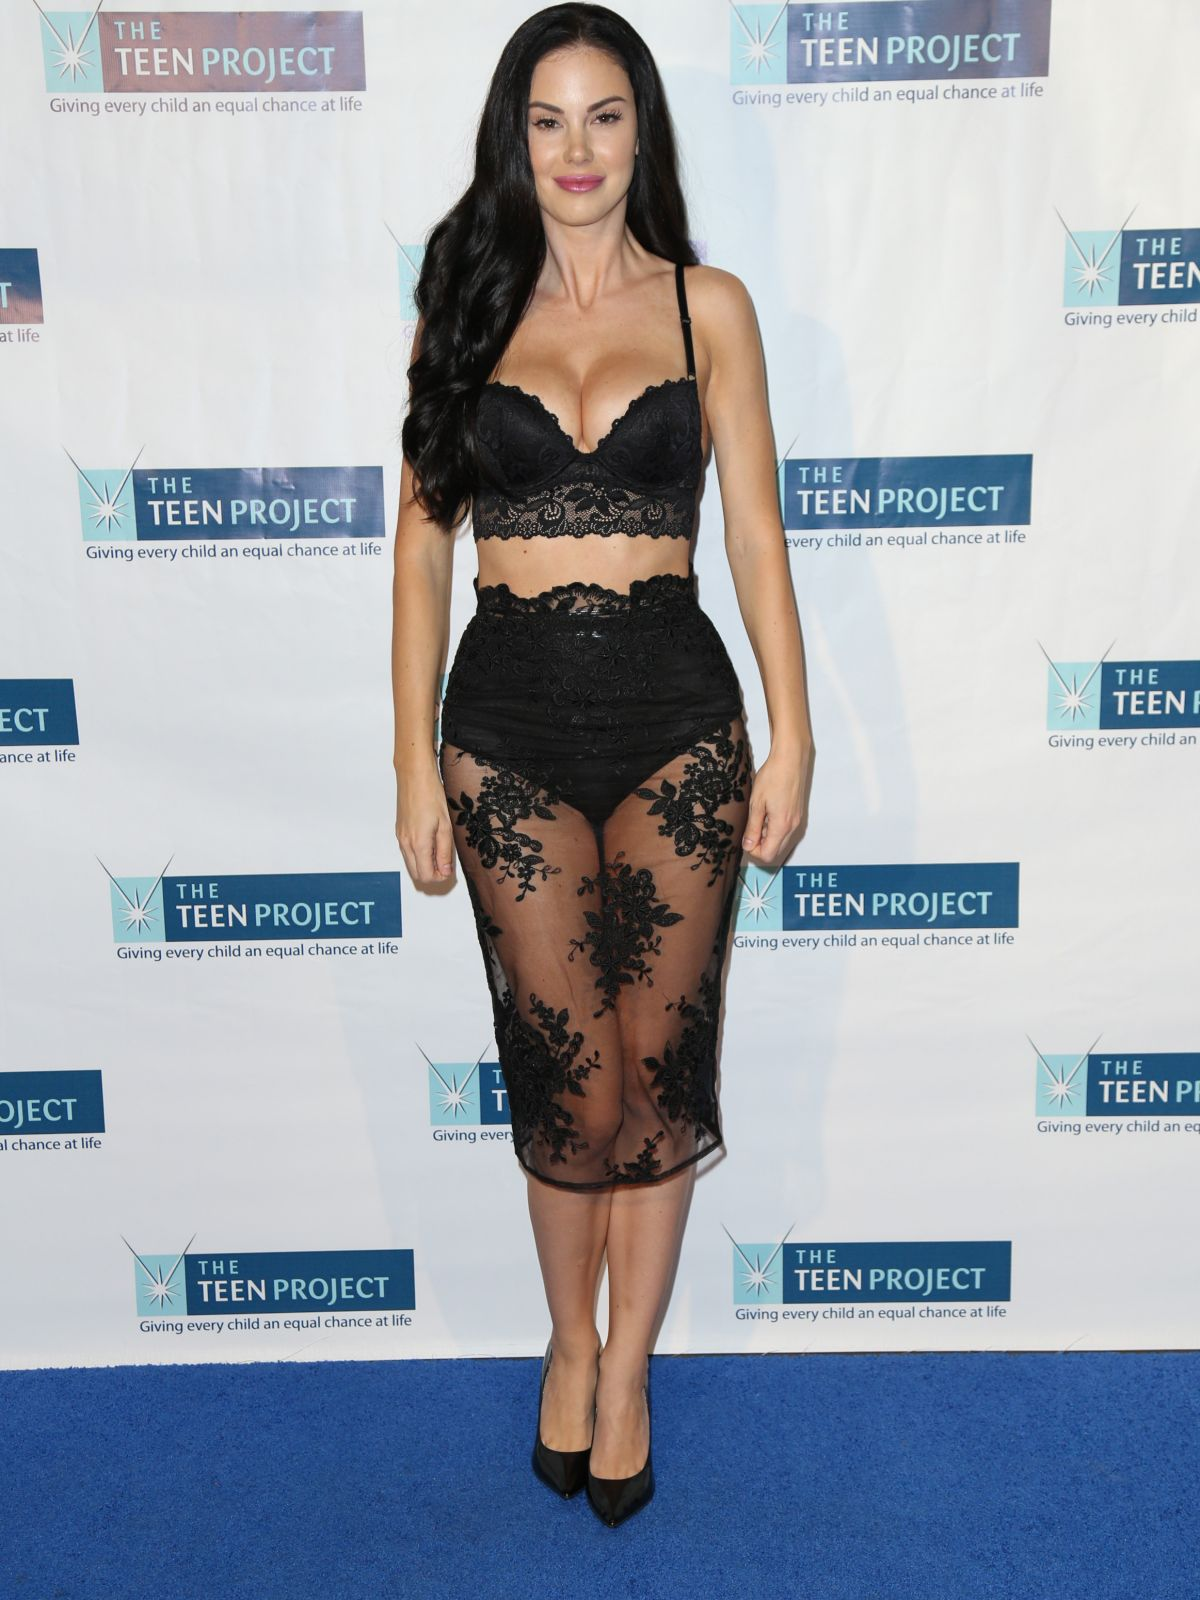 JAYDE NICOLE at The Teen Project Hollywood Red Carpet Event 10/12/2015